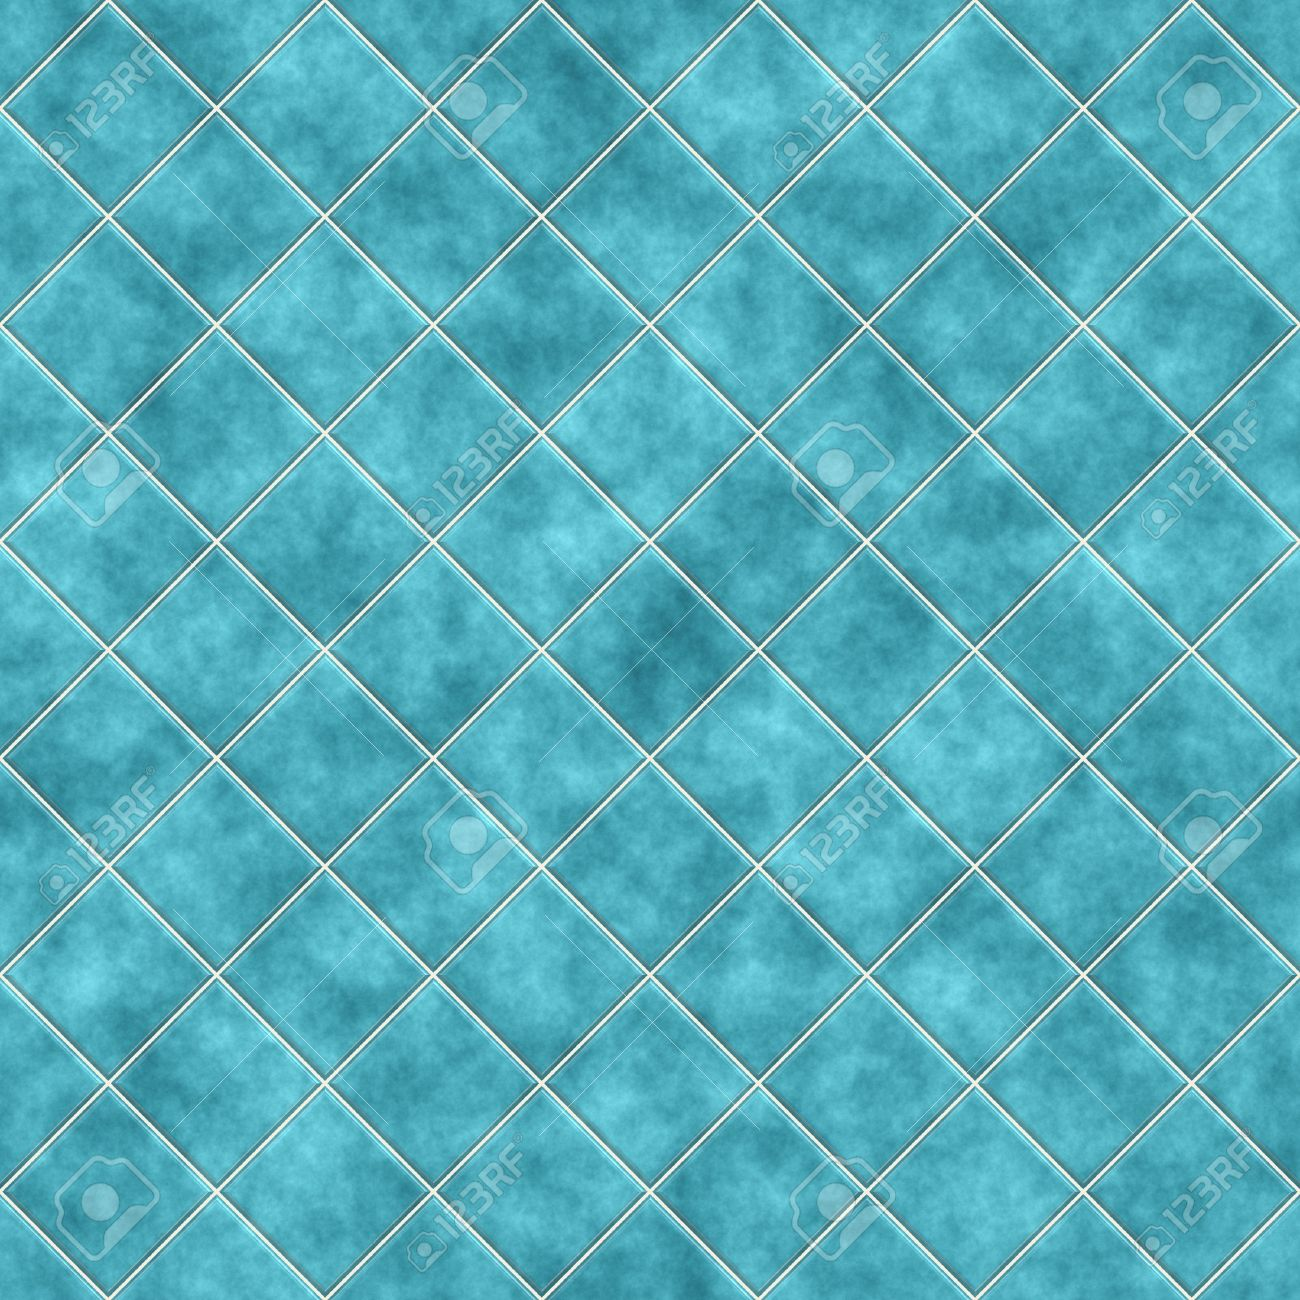 Seamless Blue Tiles Texture Background, Kitchen Or Bathroom ...